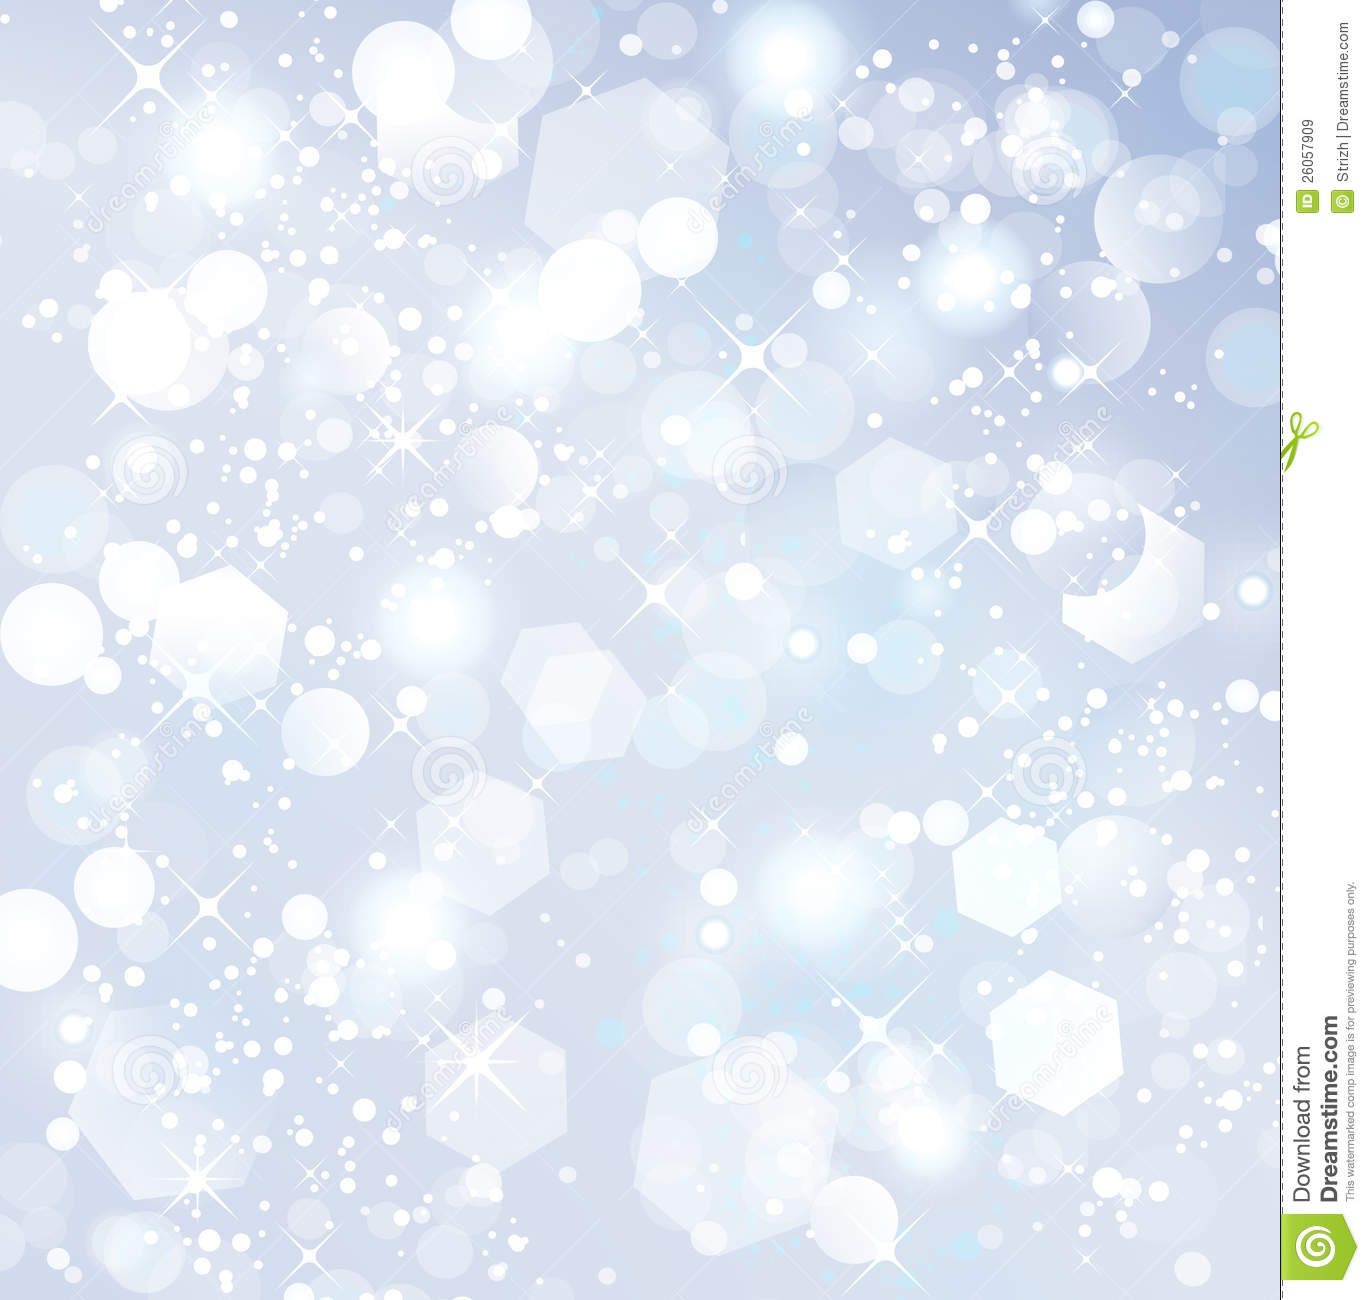 White Christmas Background Royalty Free Stock Images - Image: 26057909